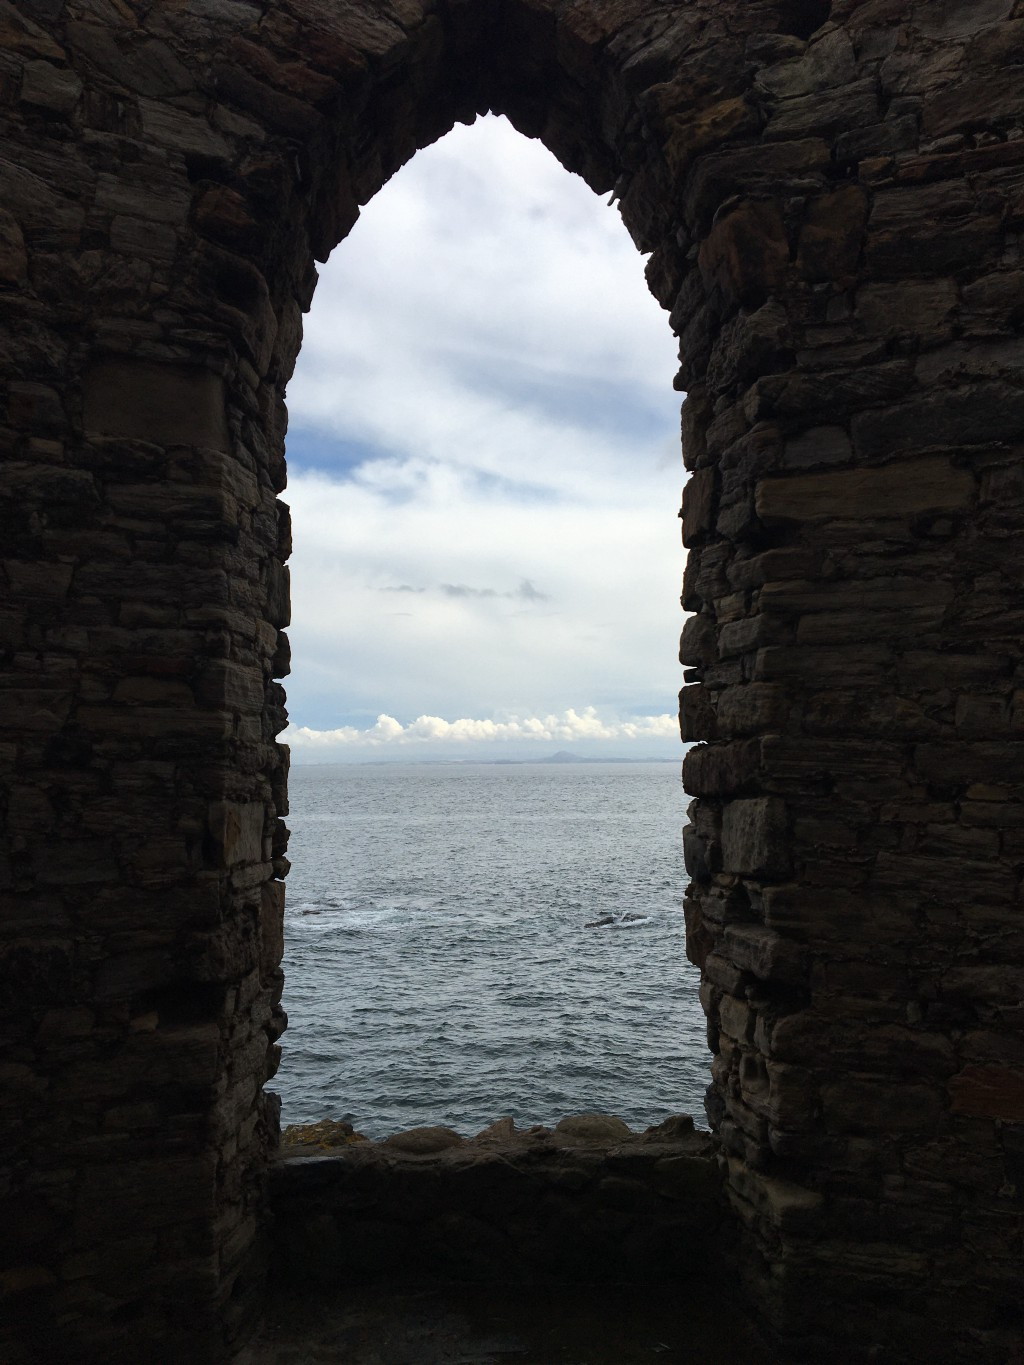 An ancient window, looking out to the sea